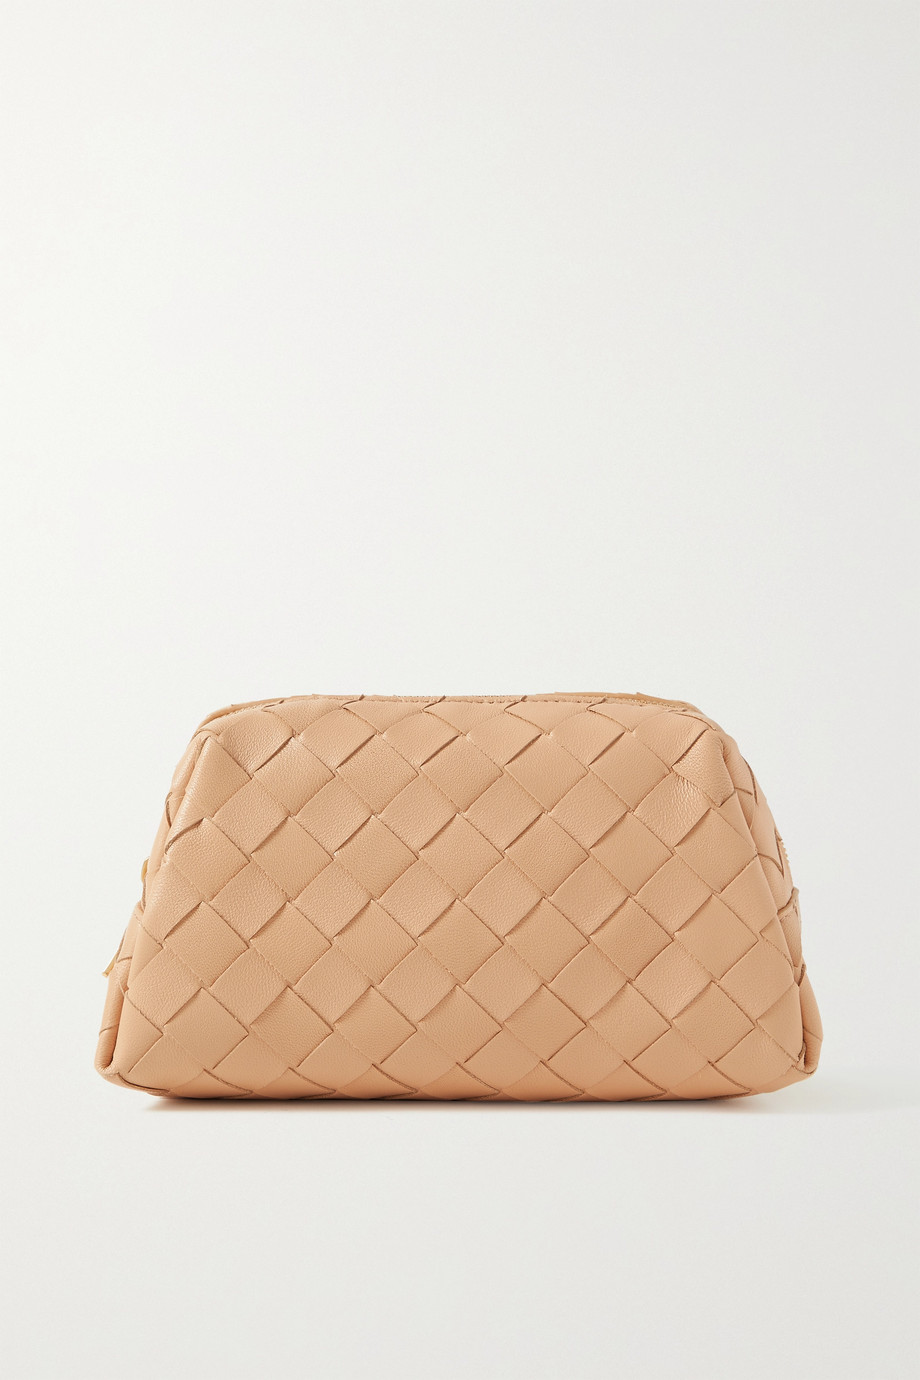 BOTTEGA VENETA Intrecciato small leather cosmetics case